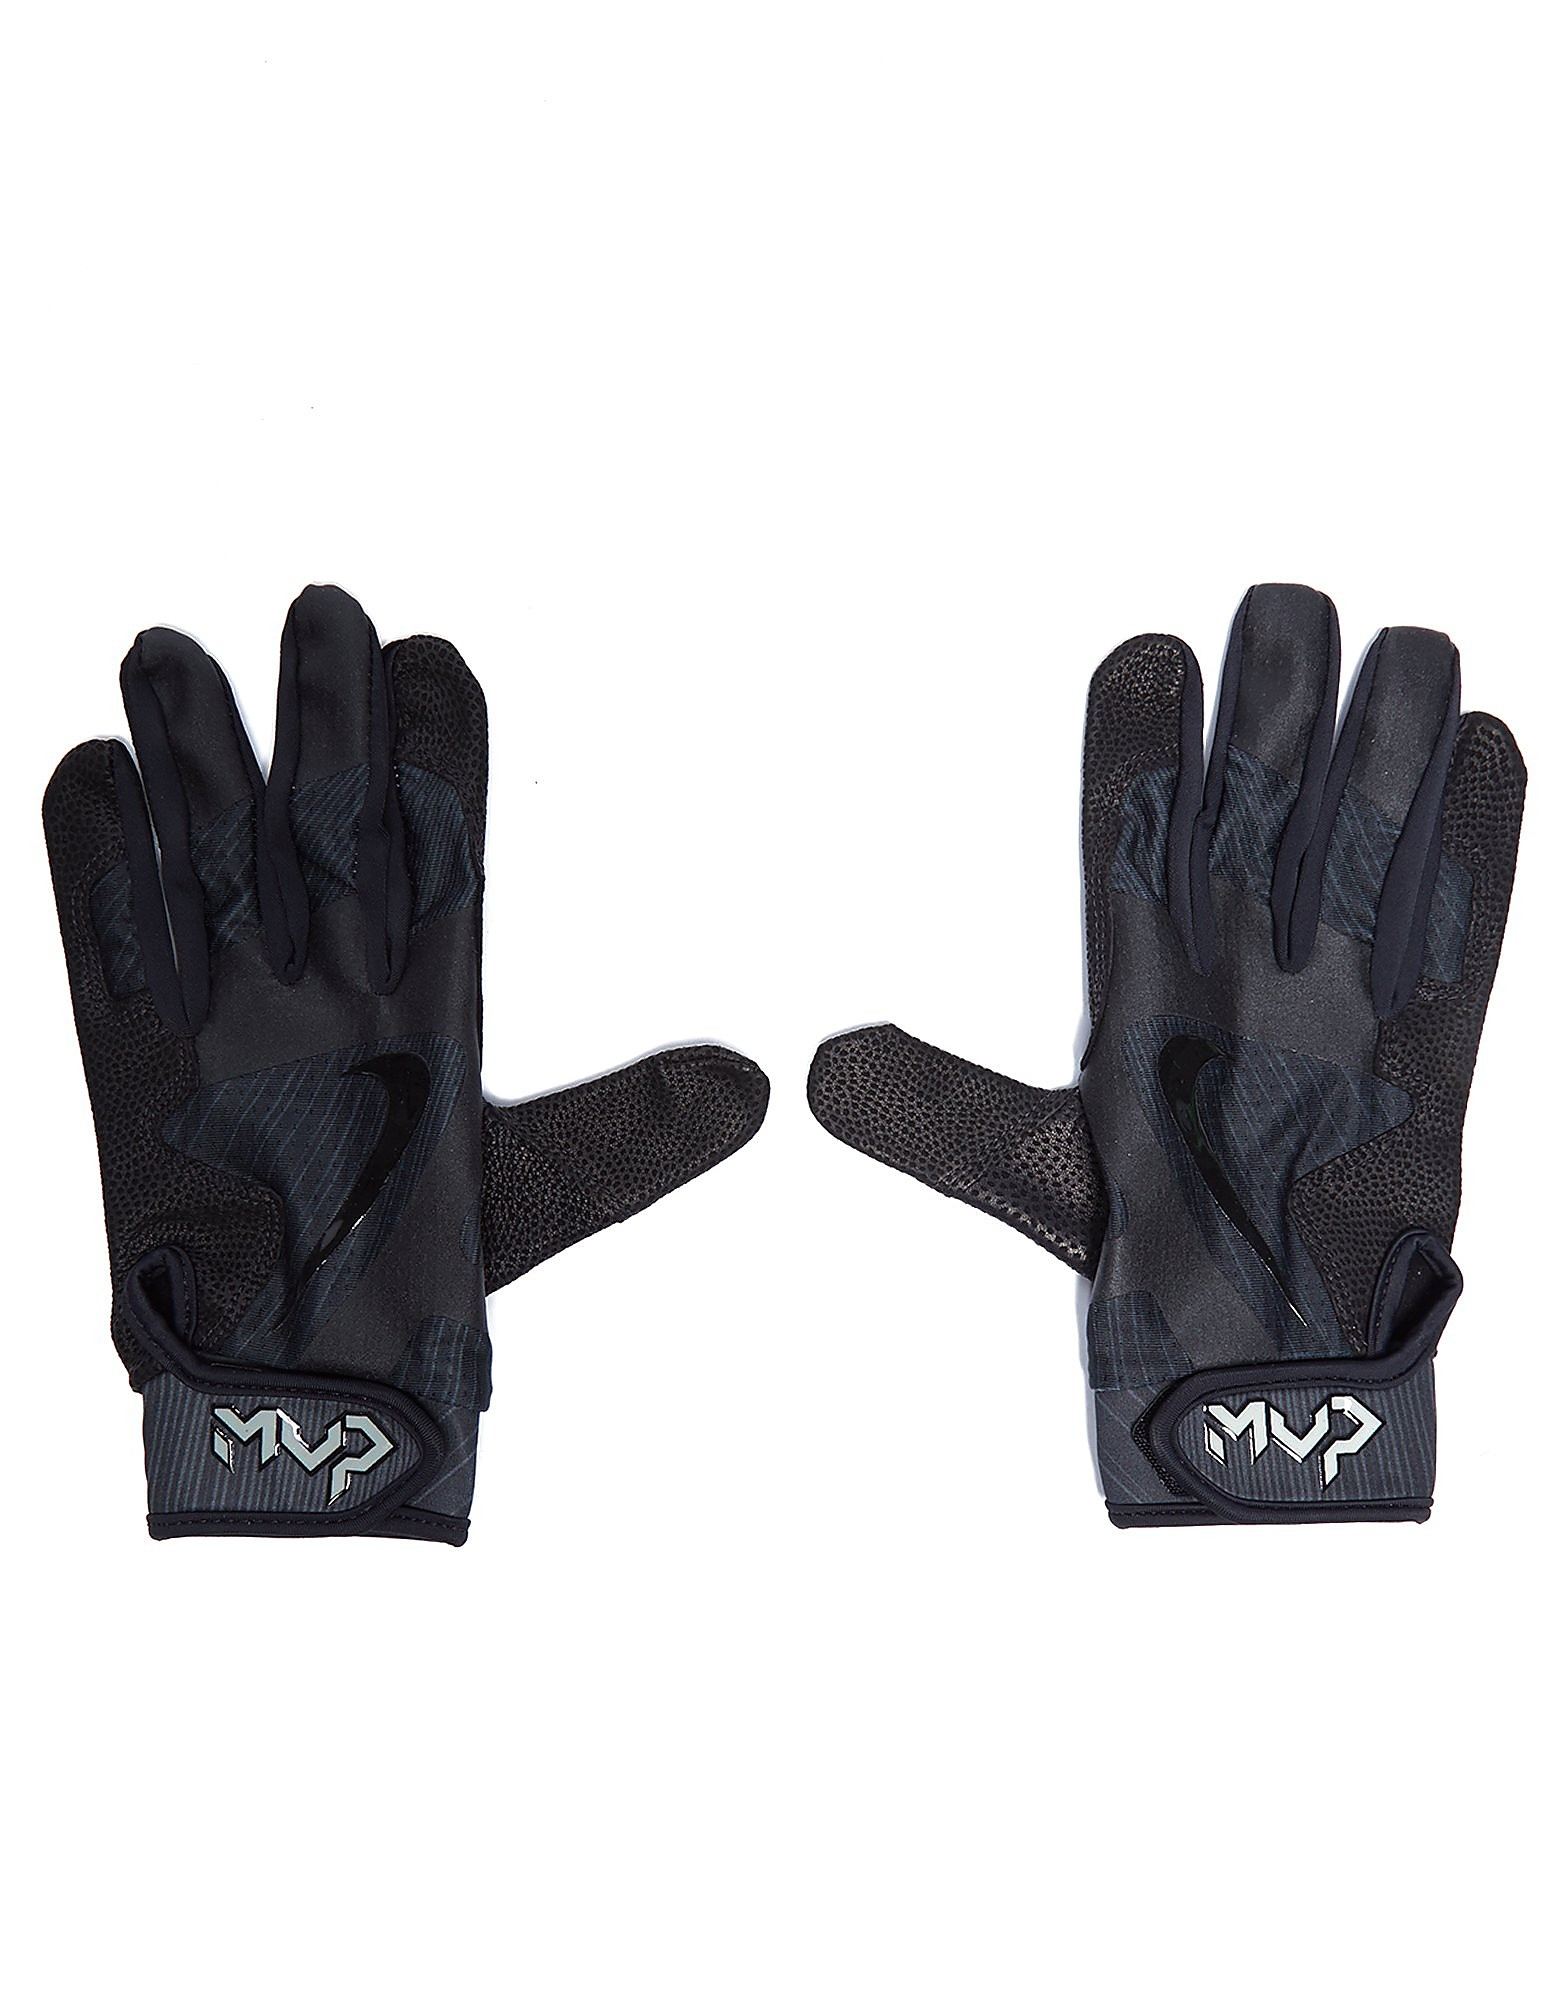 Nike Gants de baseball MVP Pro Batting